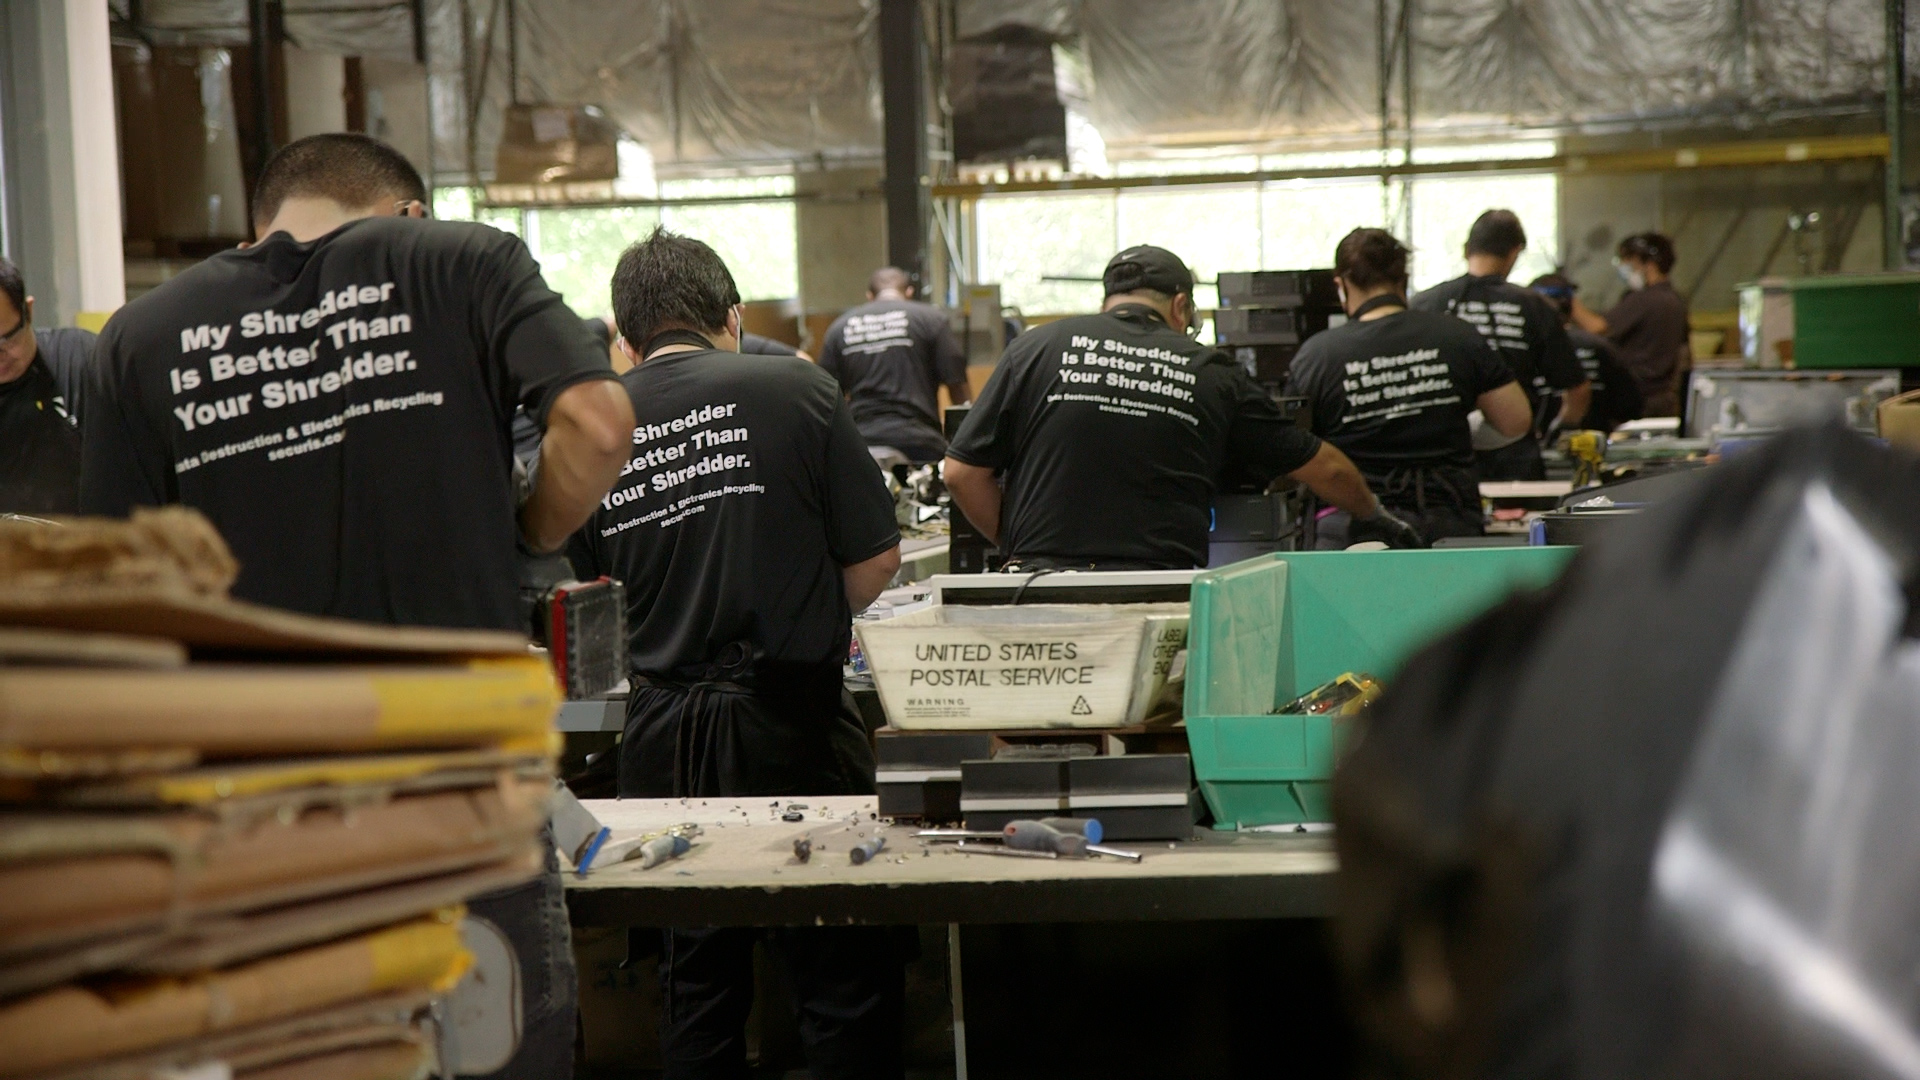 Warehouse workers in shredder shirts